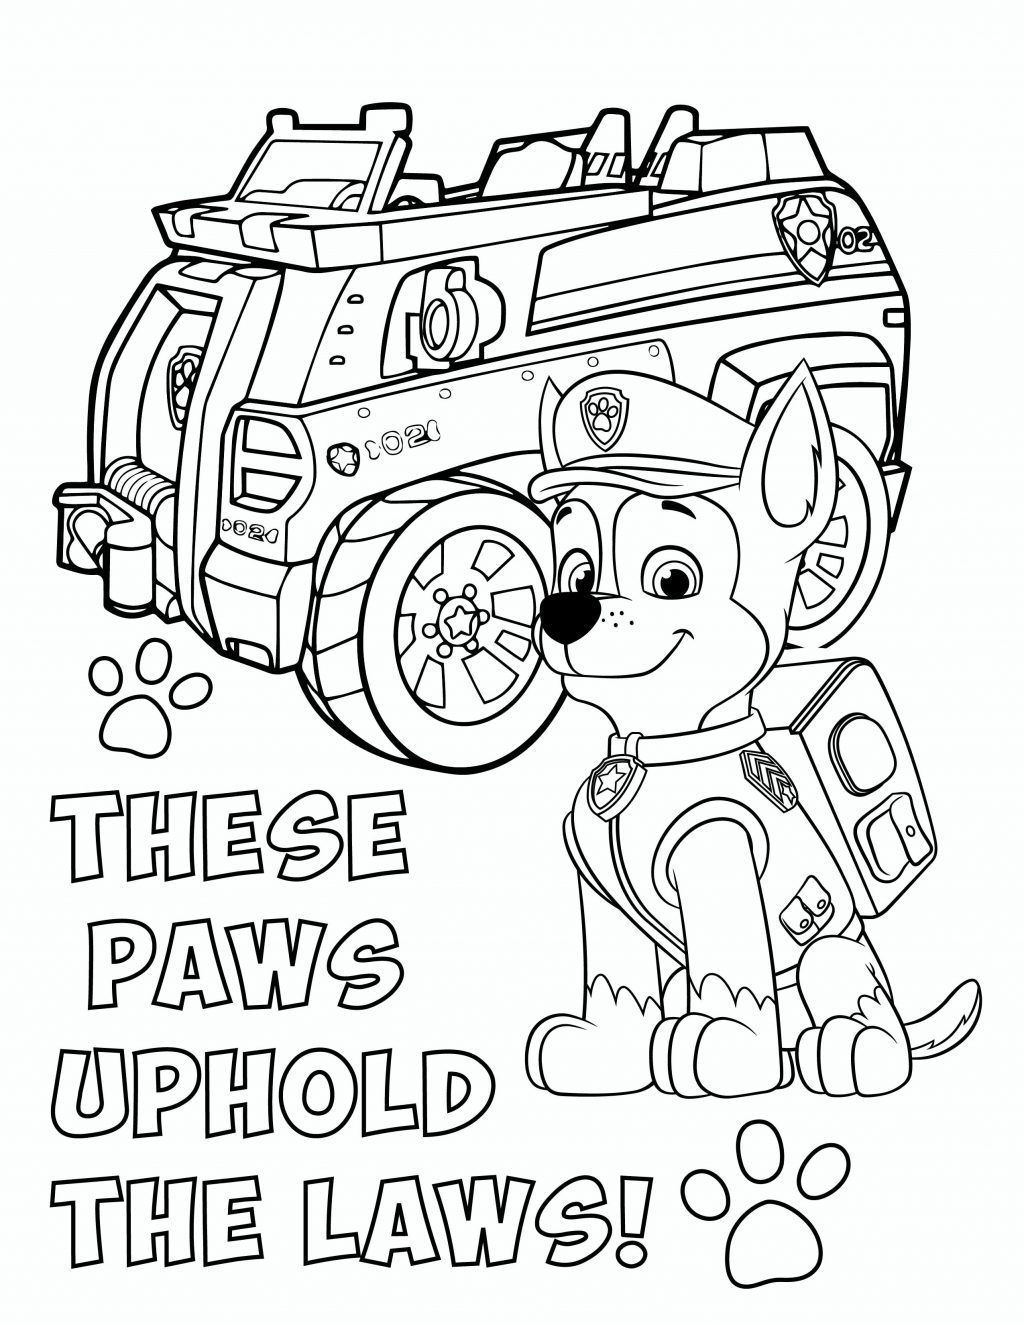 Chase Paw Patrol Coloring Page Coloring Pages Pawatrol